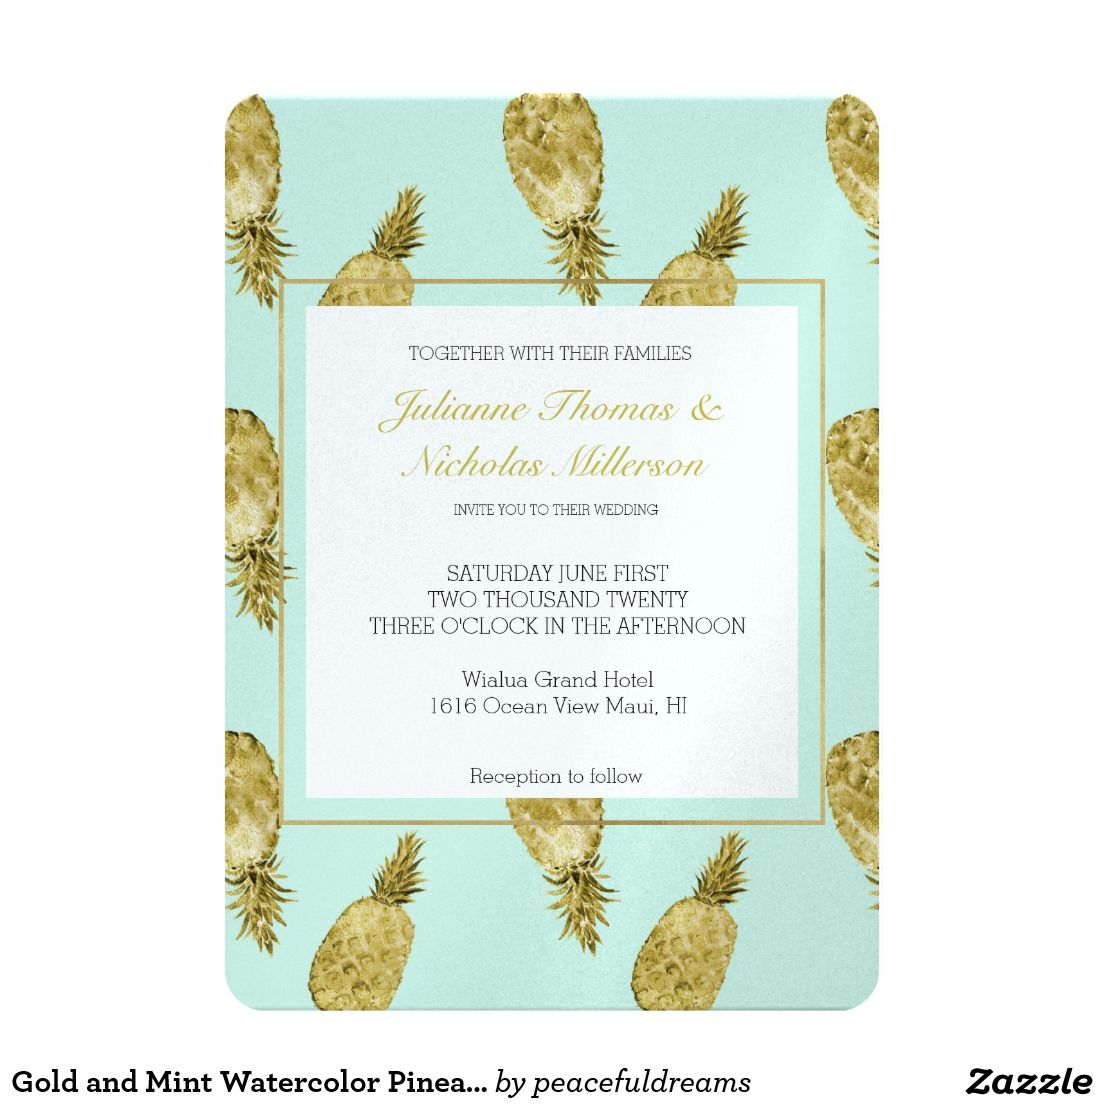 Gold and Mint Watercolor Pineapples Wedding invitations